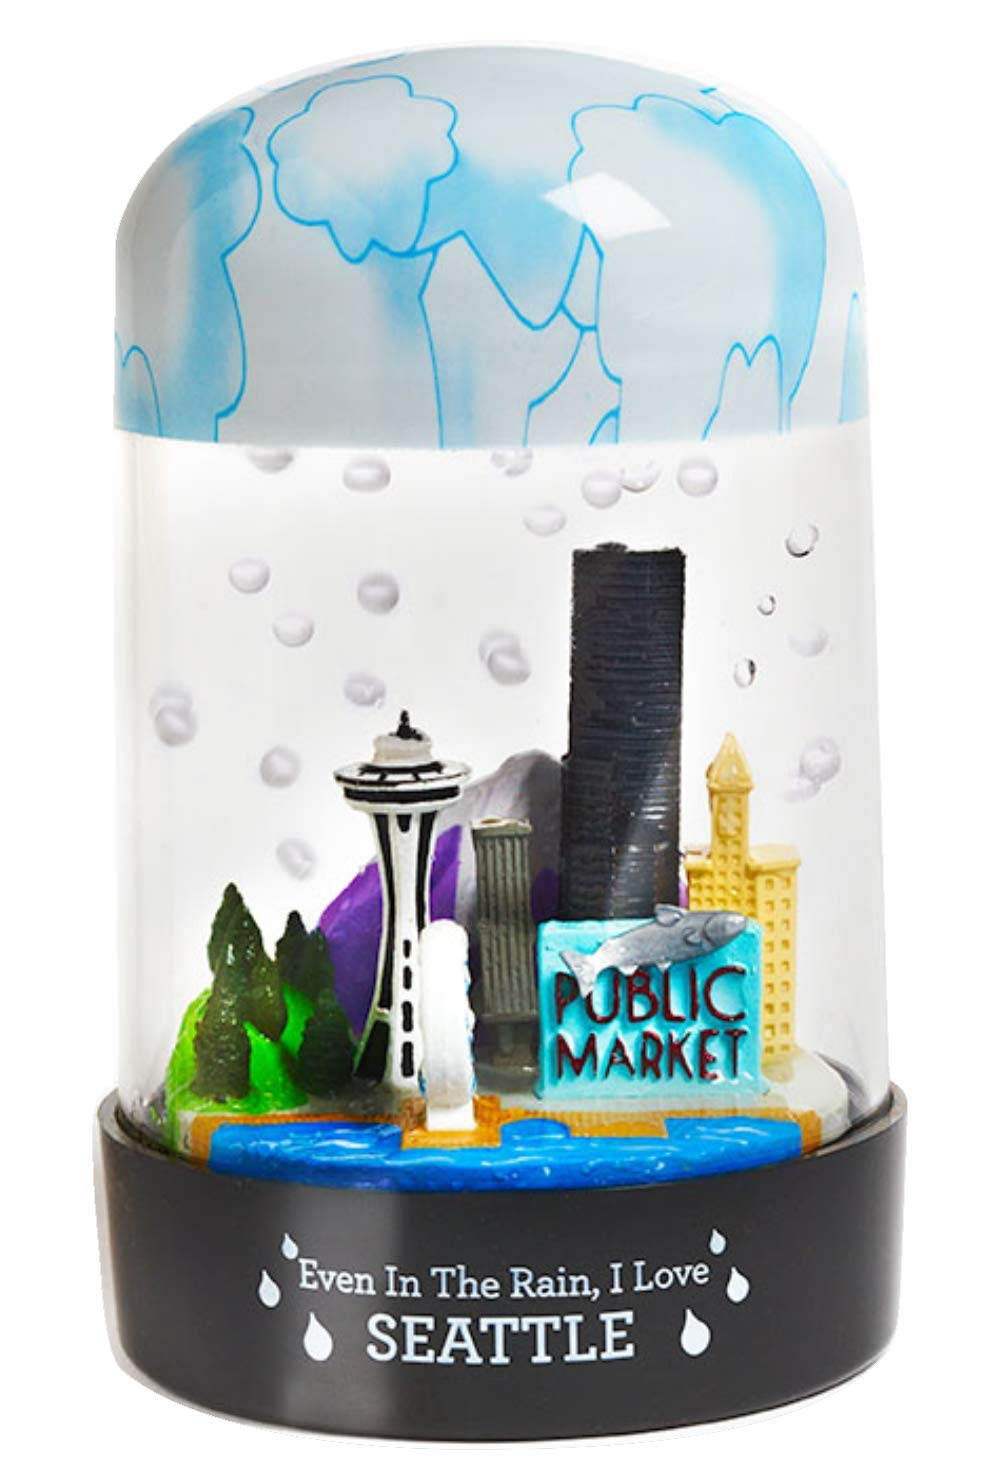 RainGlobes: Seattle - The Globe That Rains! by RainGlobes